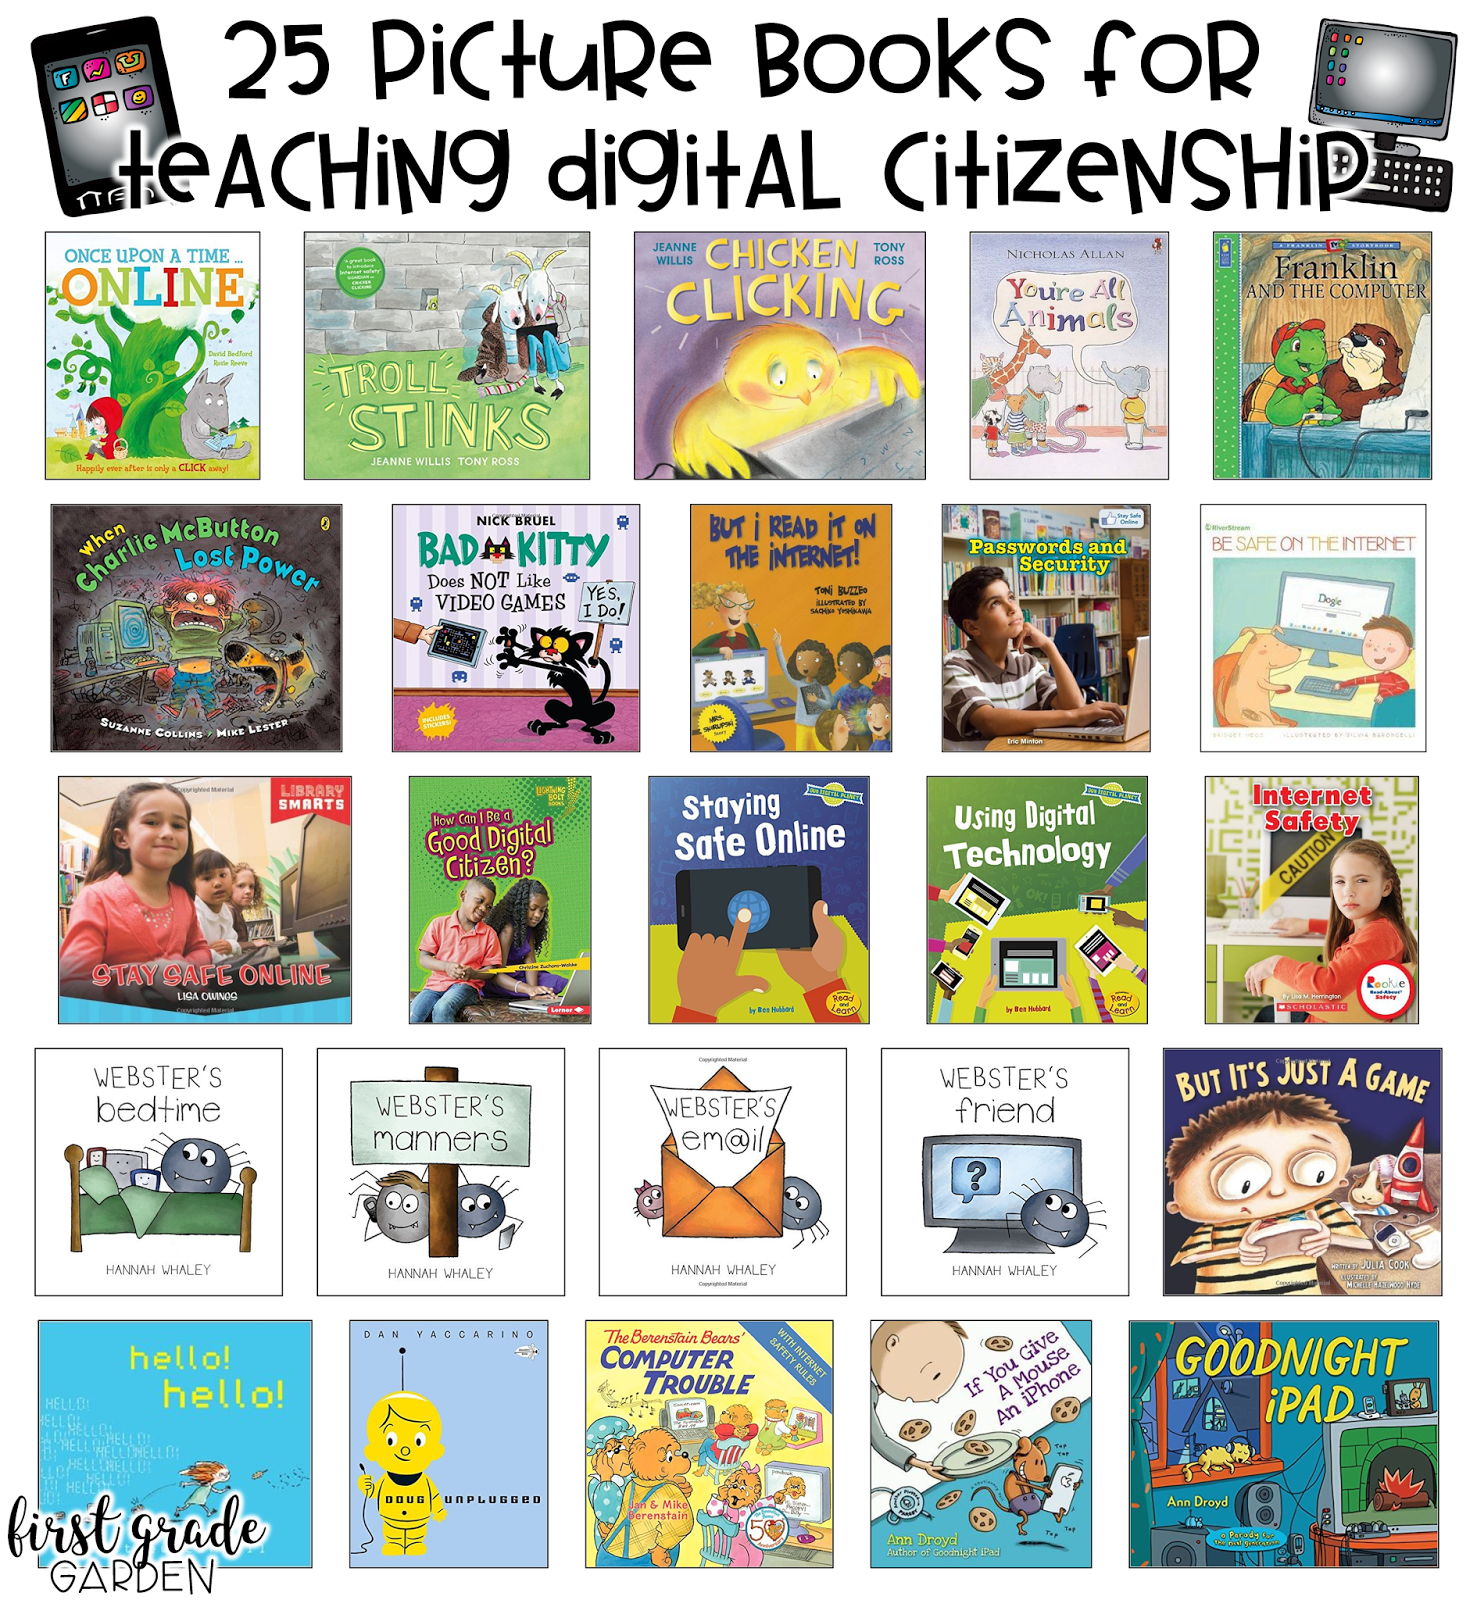 First Grade Garden 25 Picture Books For Teaching Digital